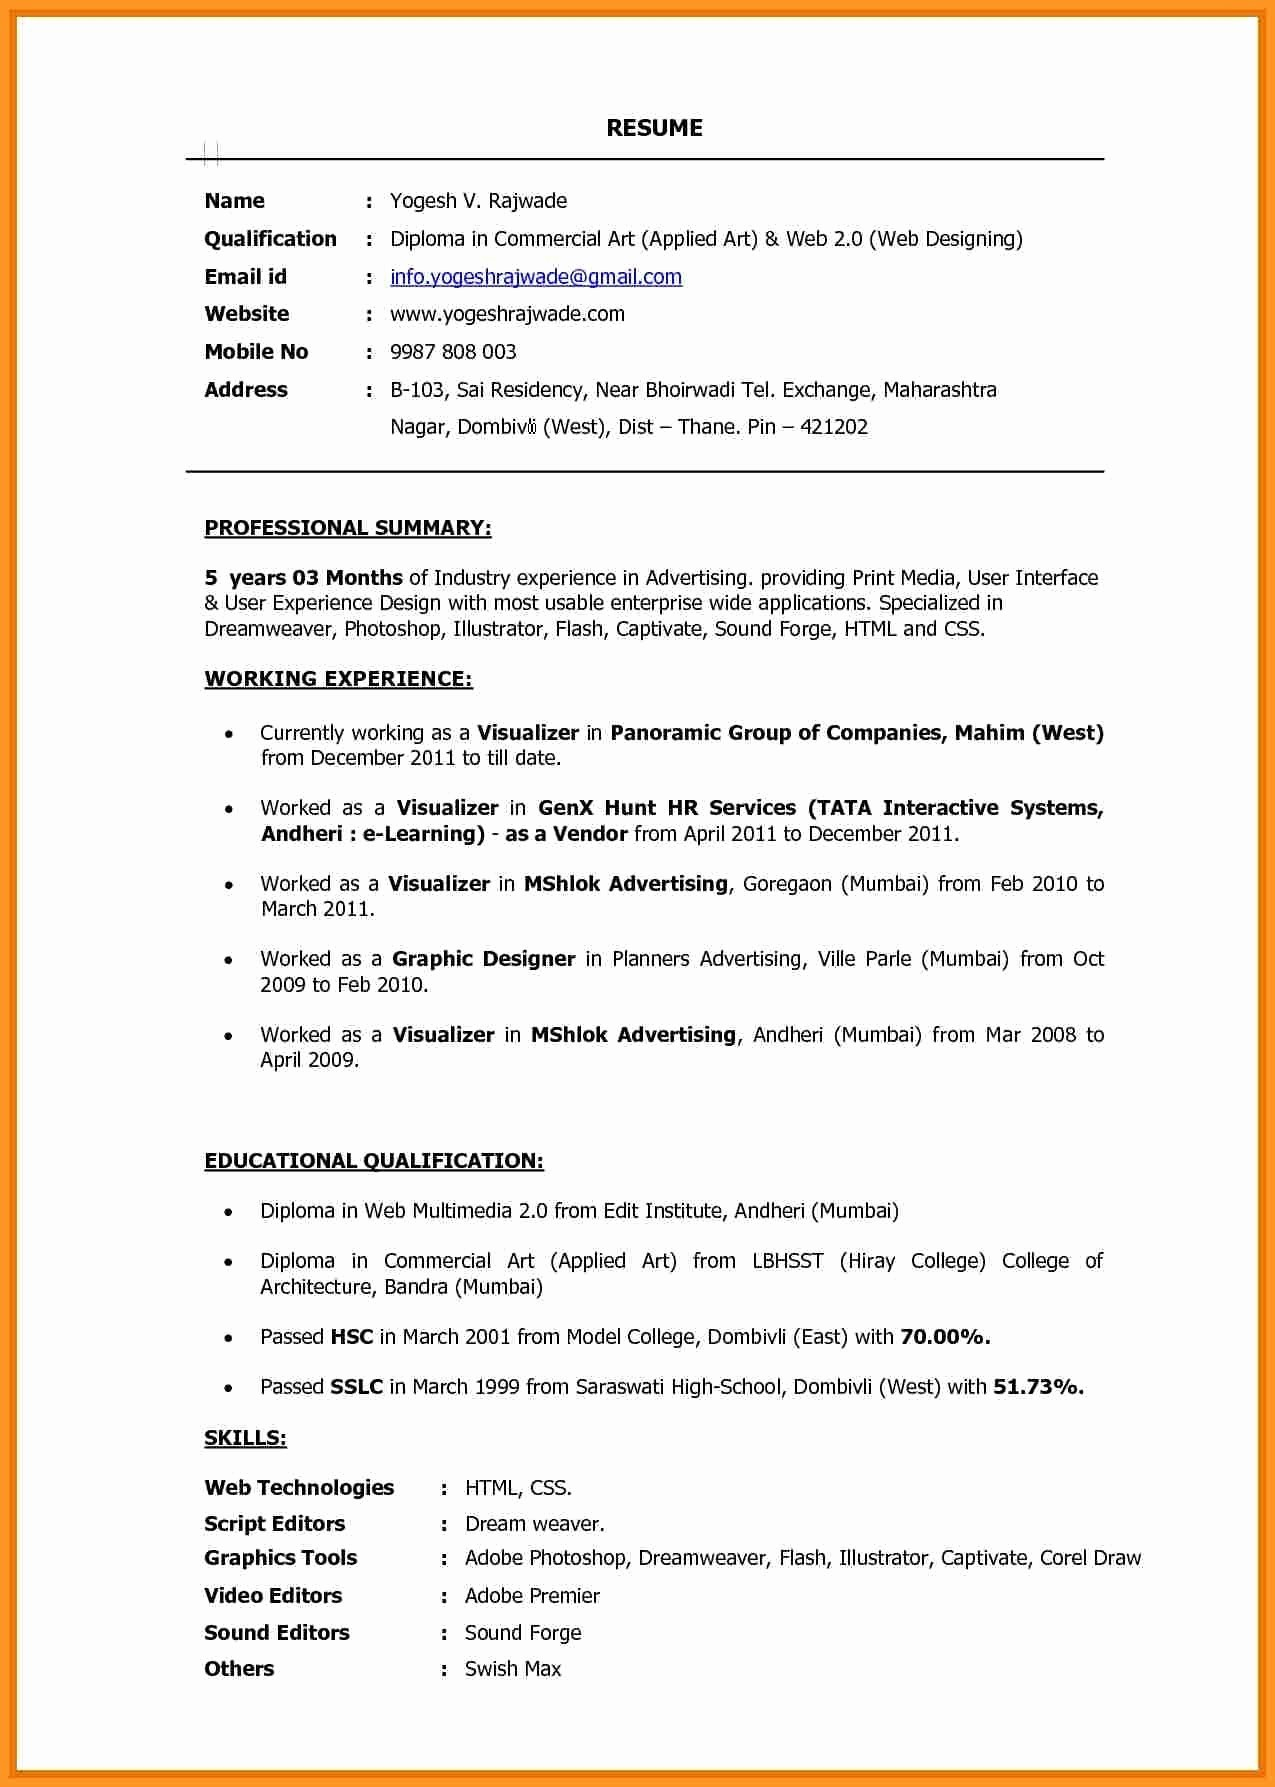 ux resume template example-Beautiful Resume Puter Skills Examples Fresh Od Specialist Sample 17-b